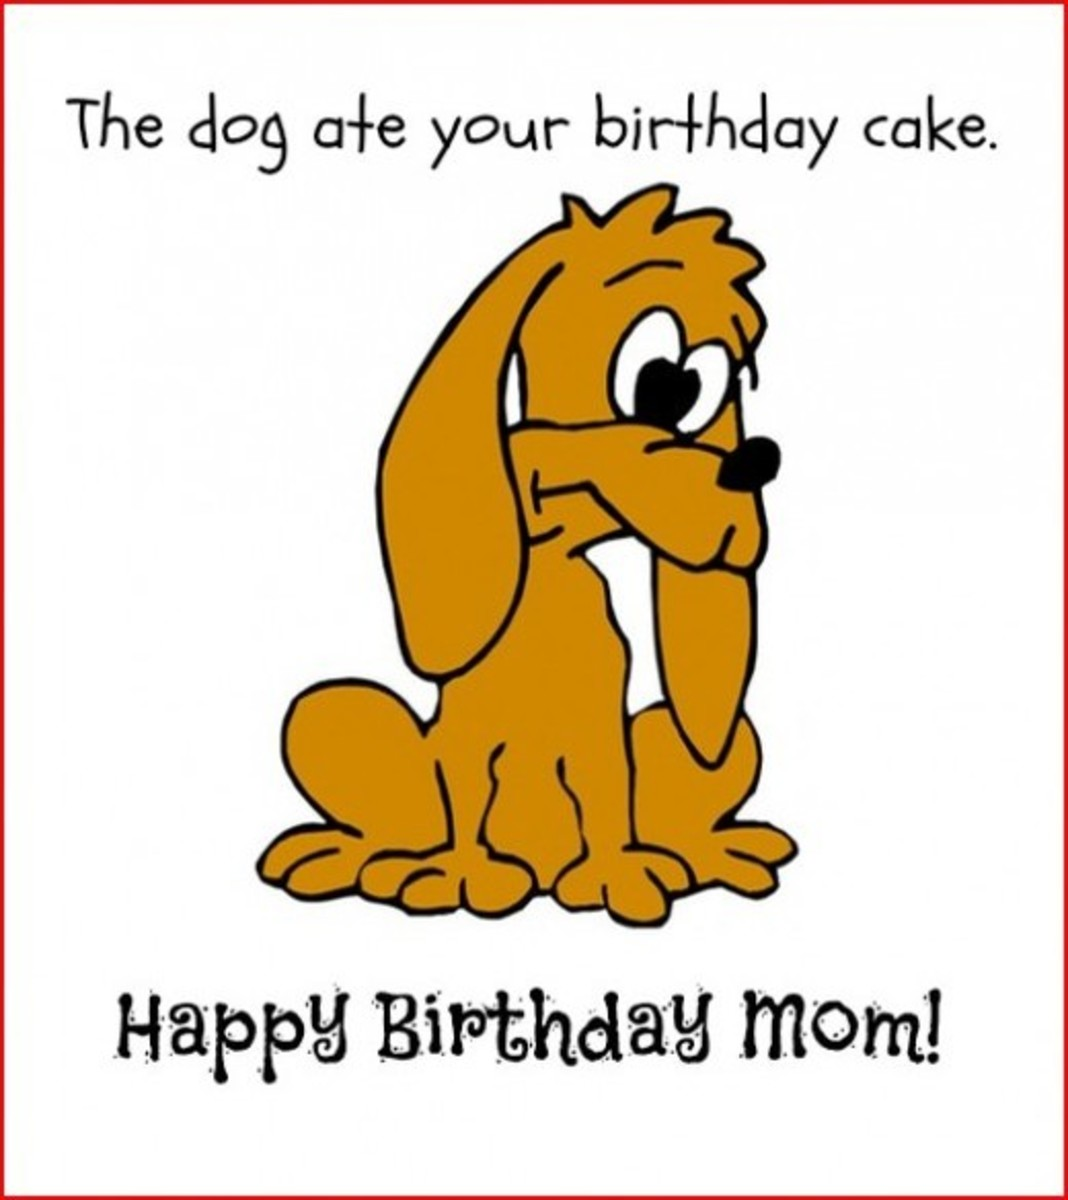 HAPPY BIRTHDAY MOM Birthday Wishes for Mom – Happy Birthday Humor Cards